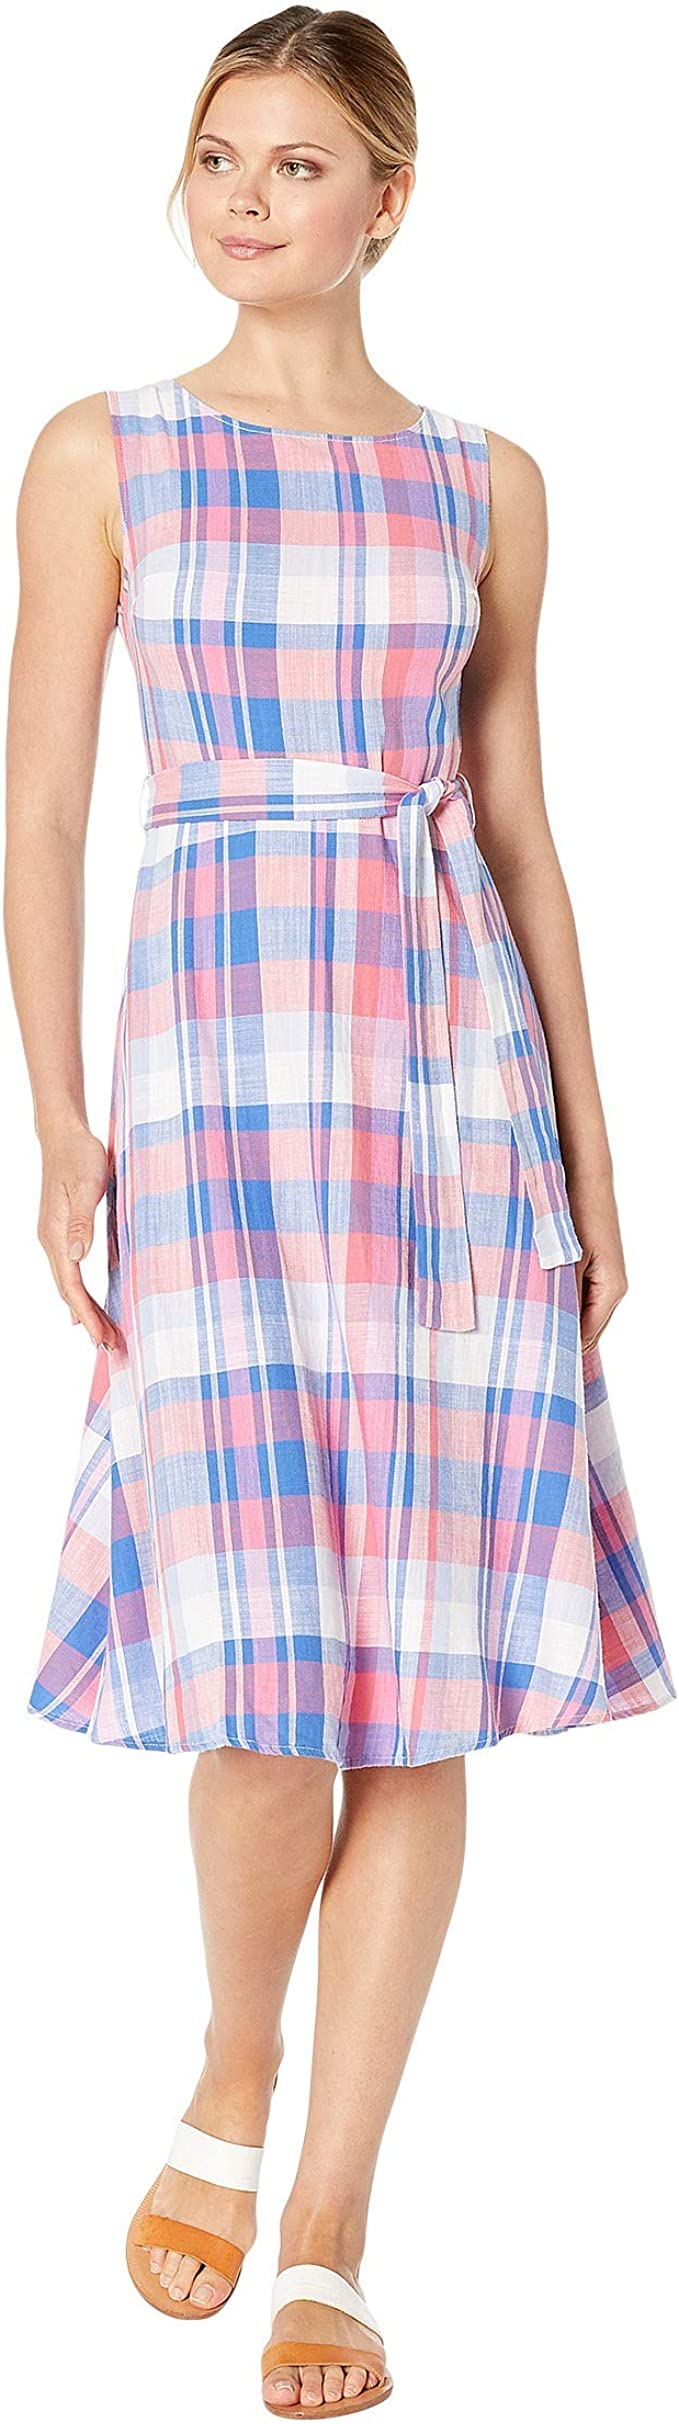 Joules Womens Fiona Sleeveless Woven Dress With Tie Detail in PINK CHECK